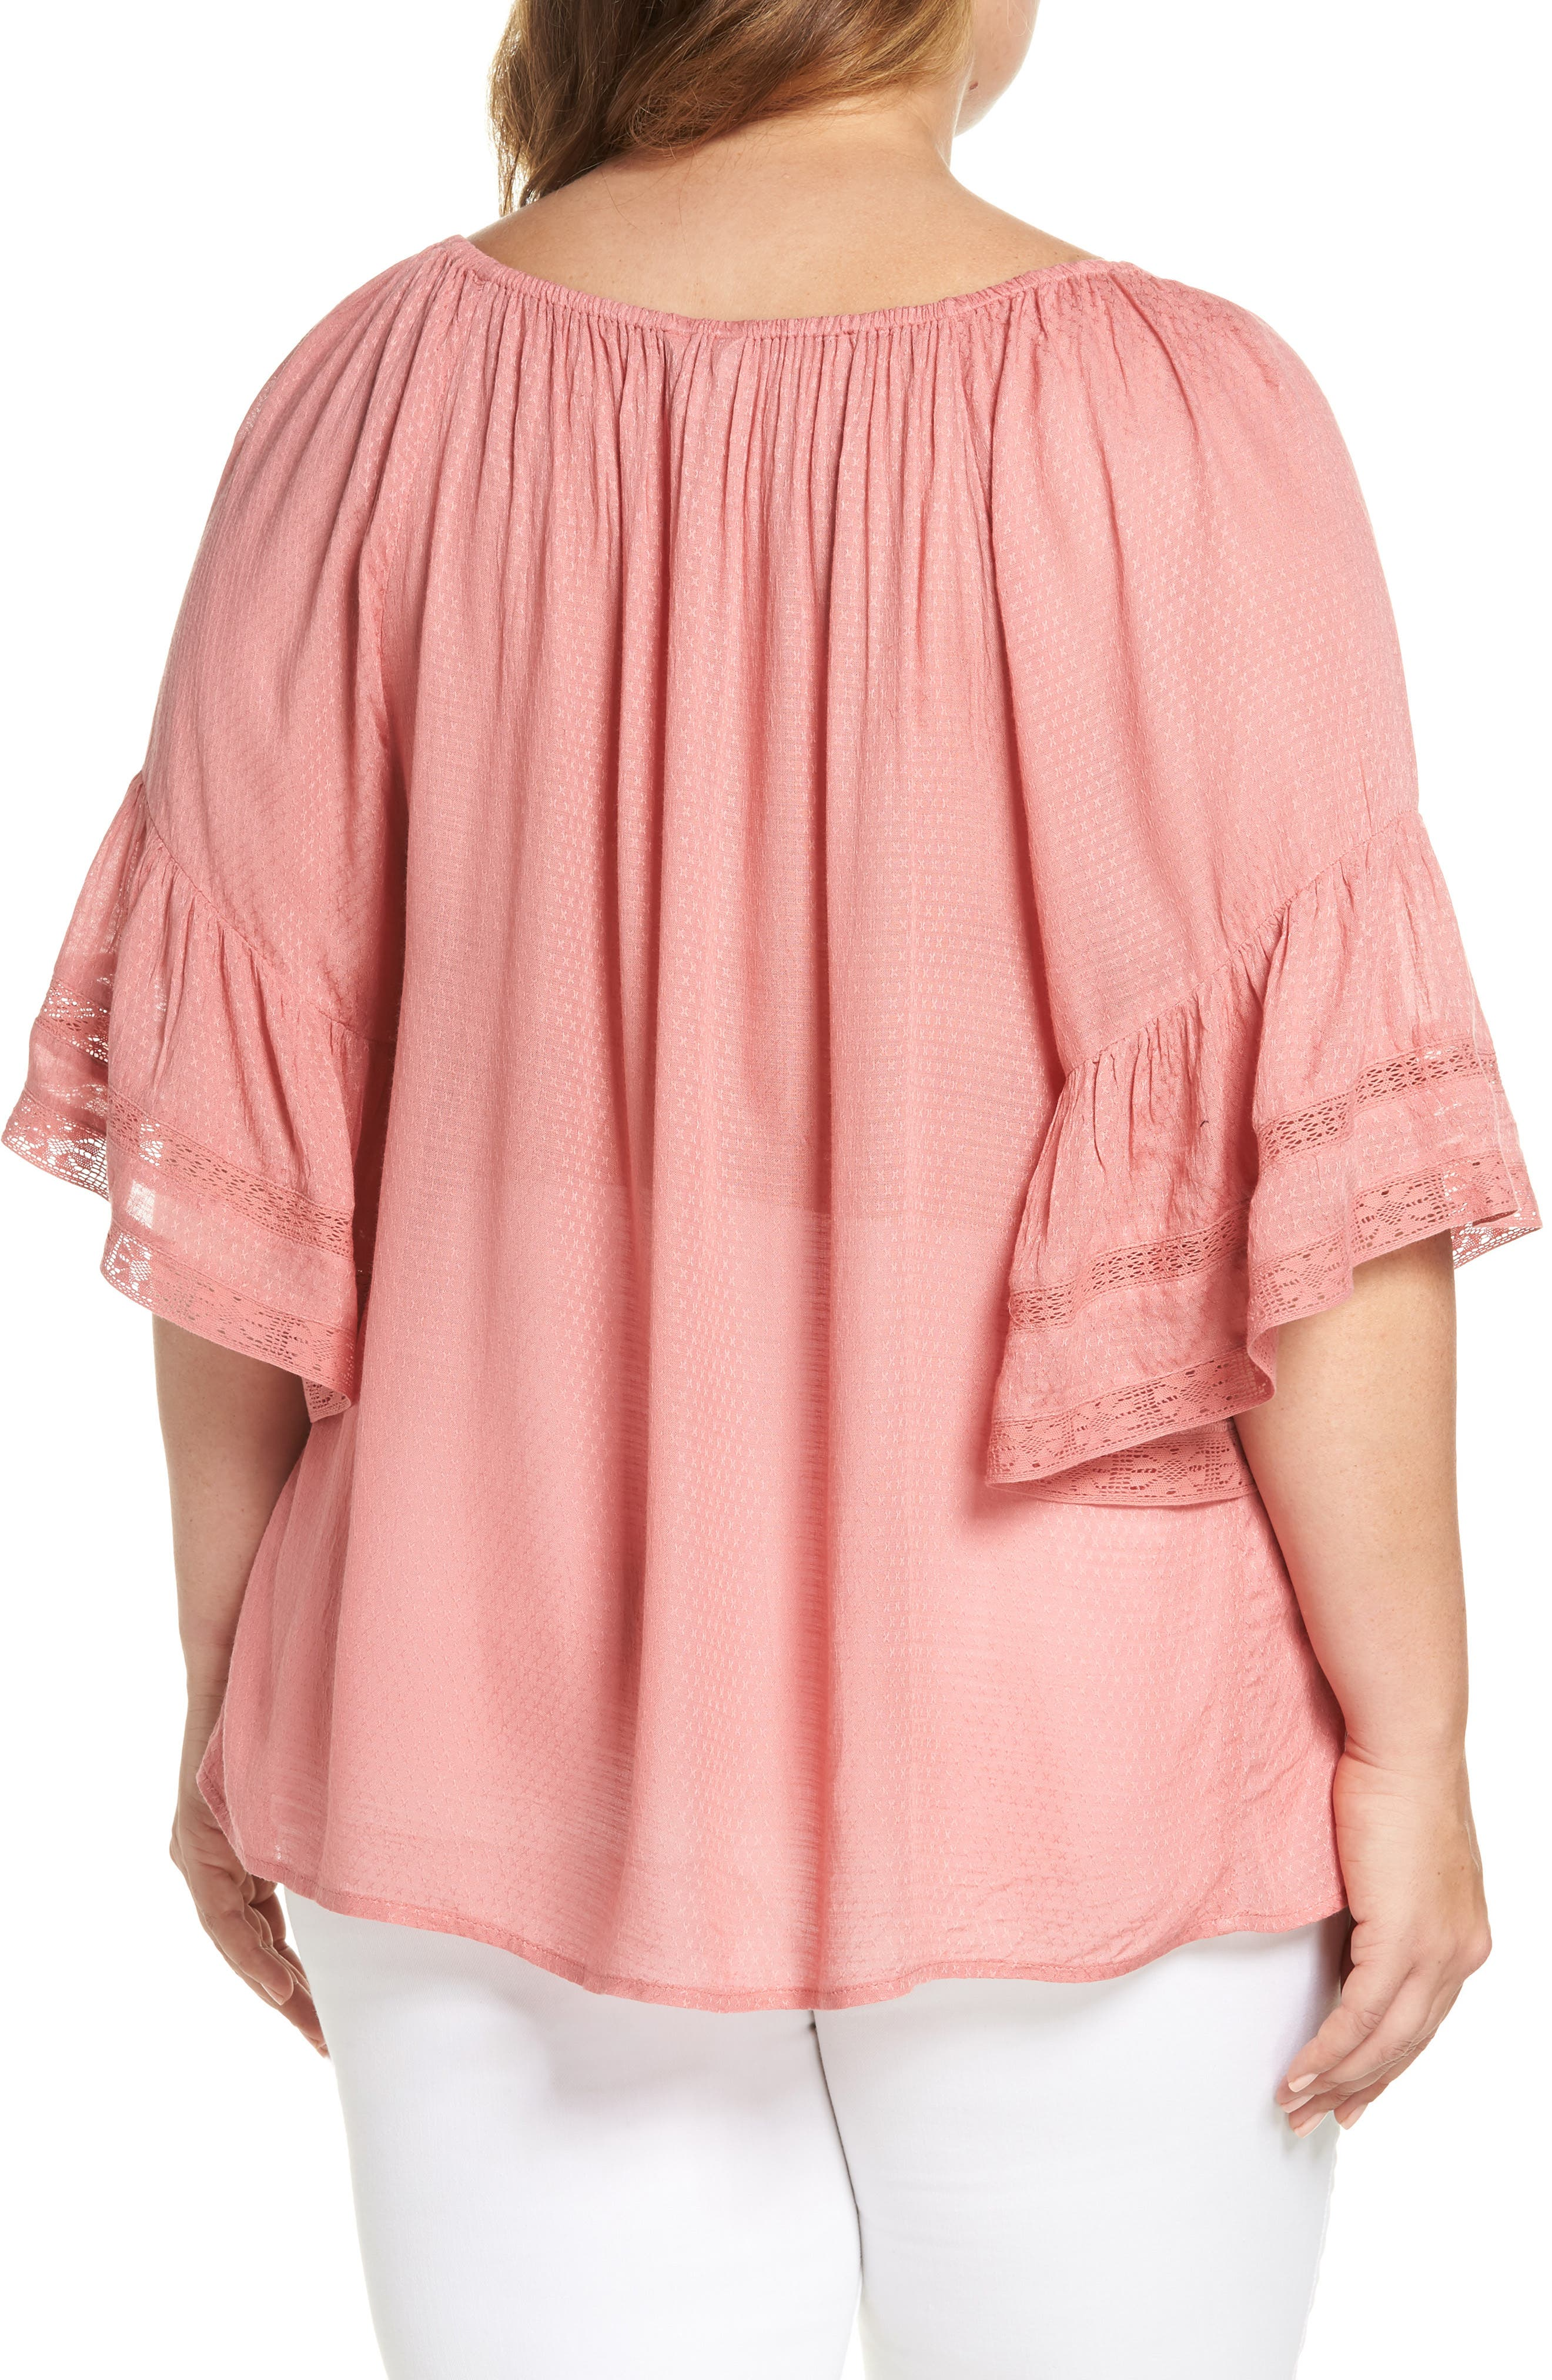 Bell Sleeve Peasant Top,                             Alternate thumbnail 2, color,                             950